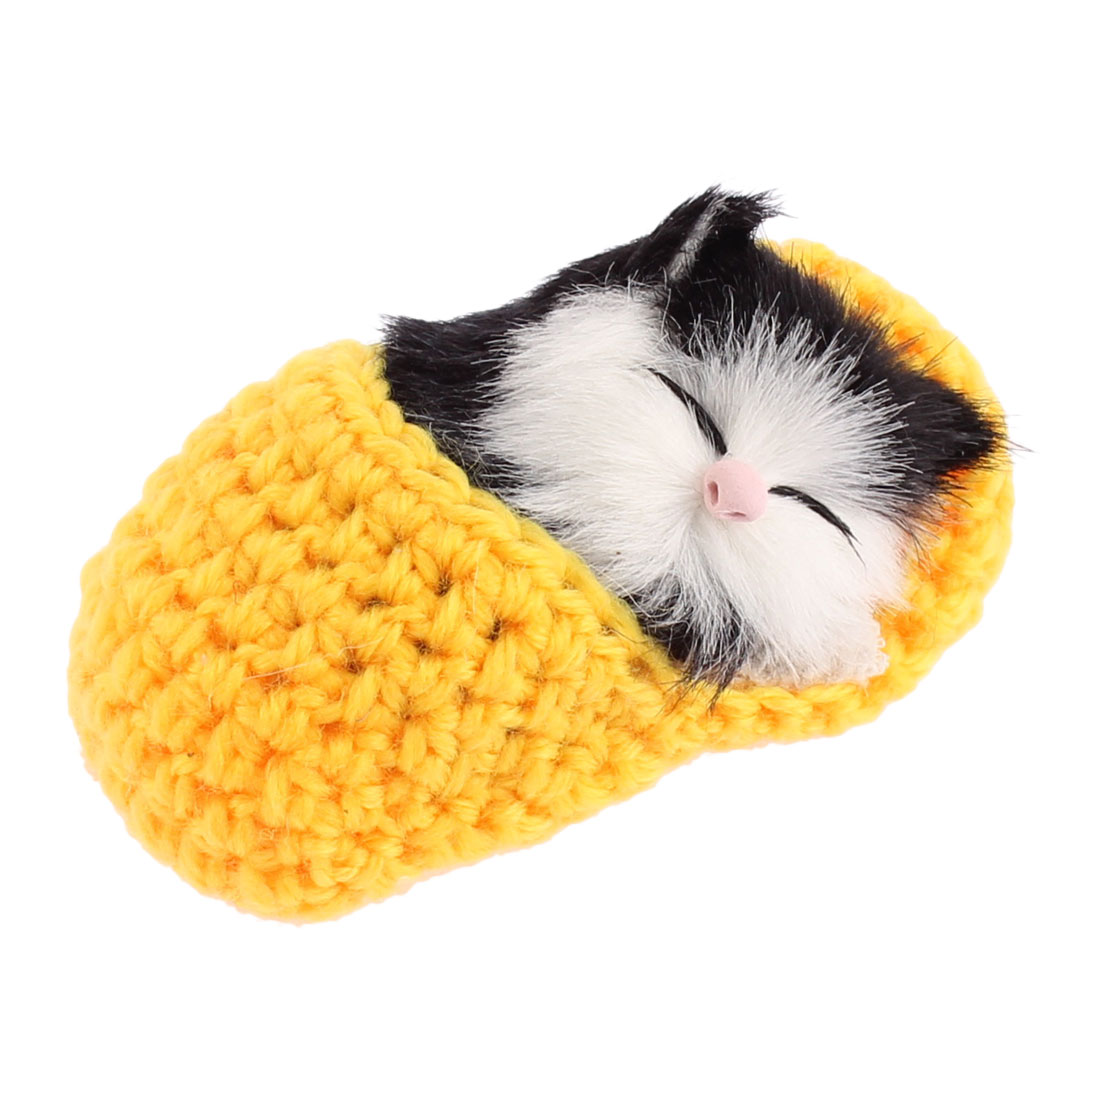 Home Decor Simulation Animal Sound Napping Sleeping Cat in Sock Yellow